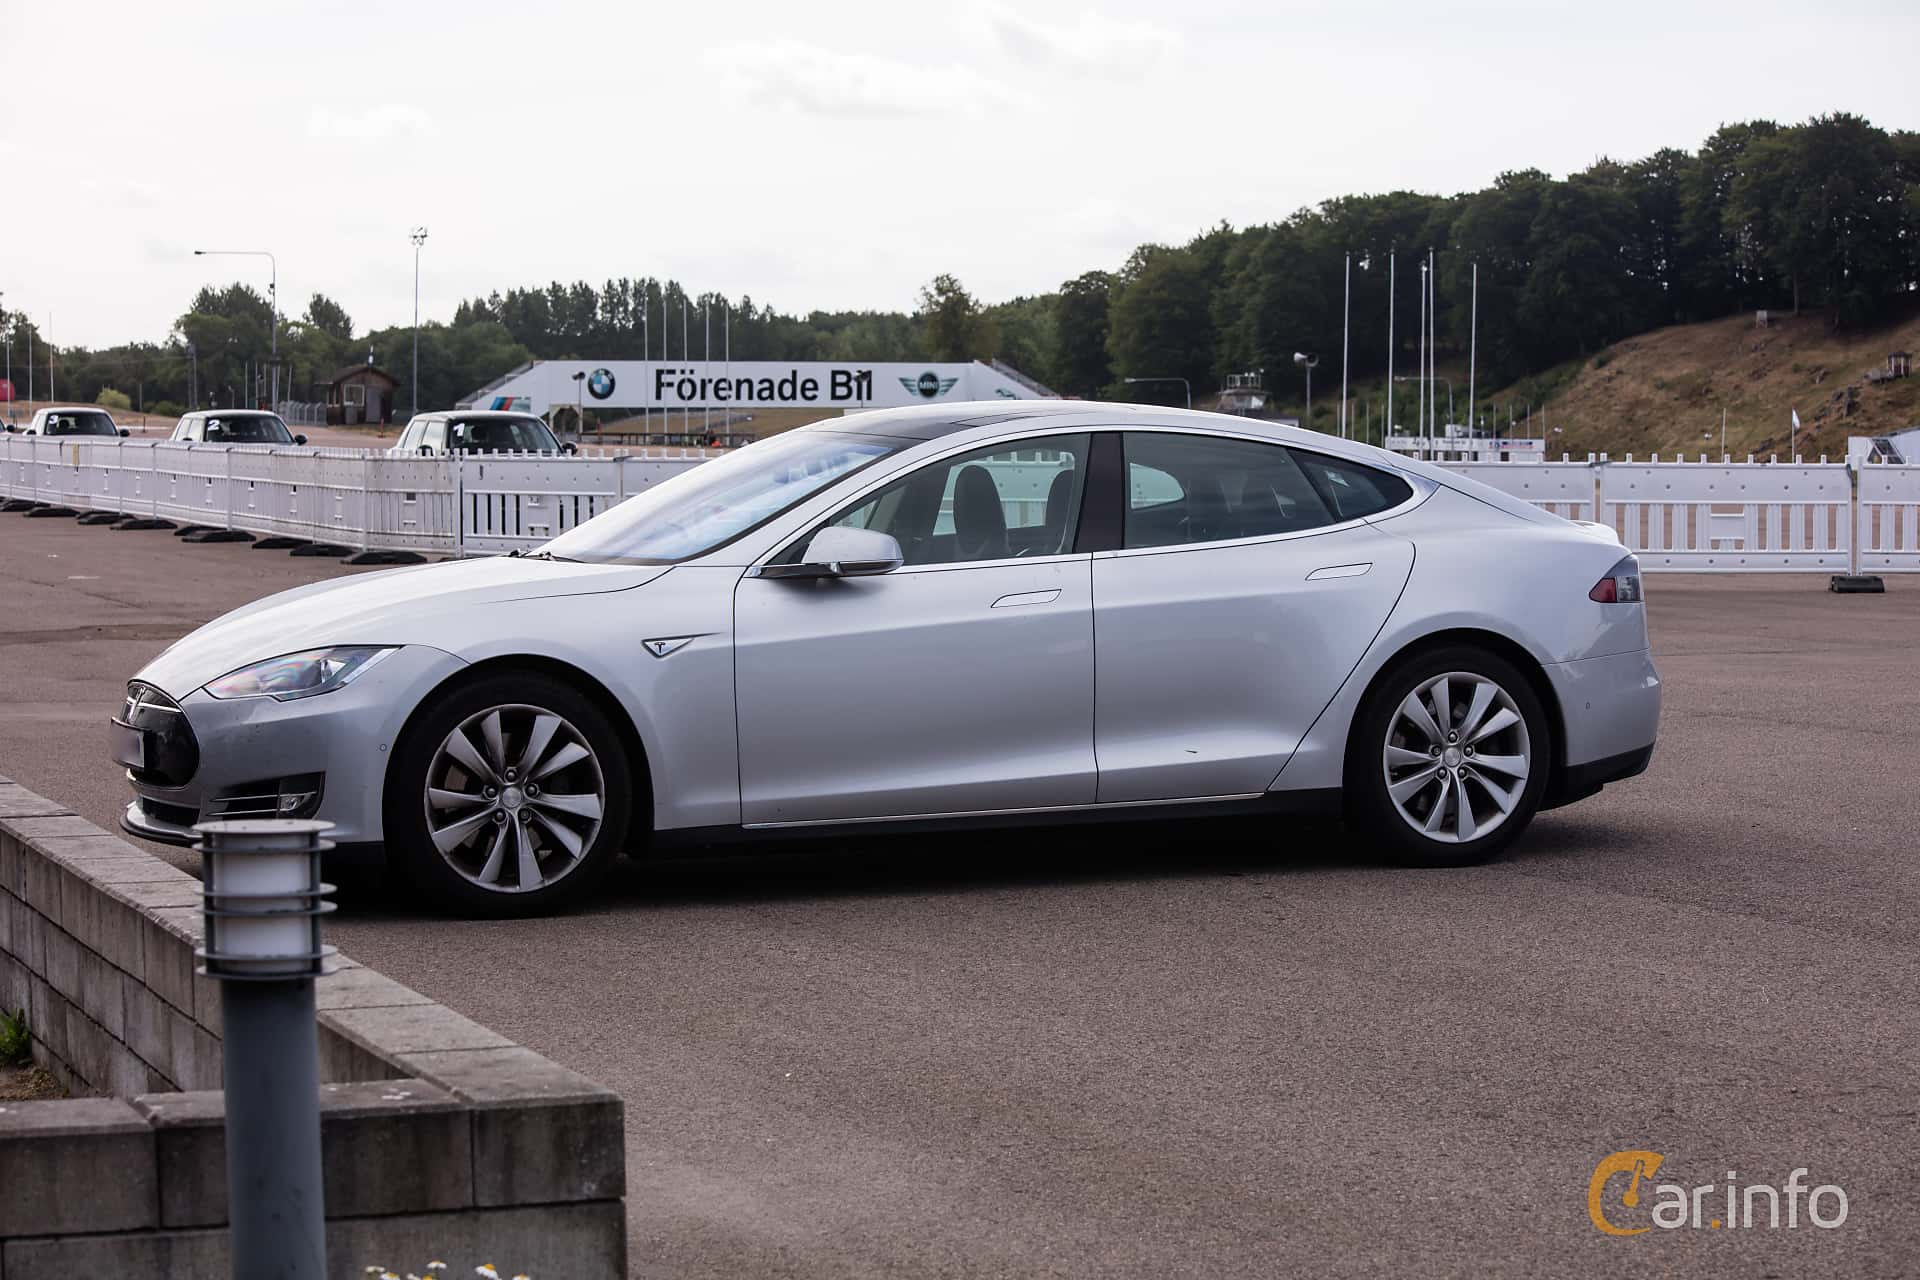 Tesla Model S 85D 85 kWh AWD Single Speed, 423hp, 2015 at JapTuning Trackday 2018 Knutstorp